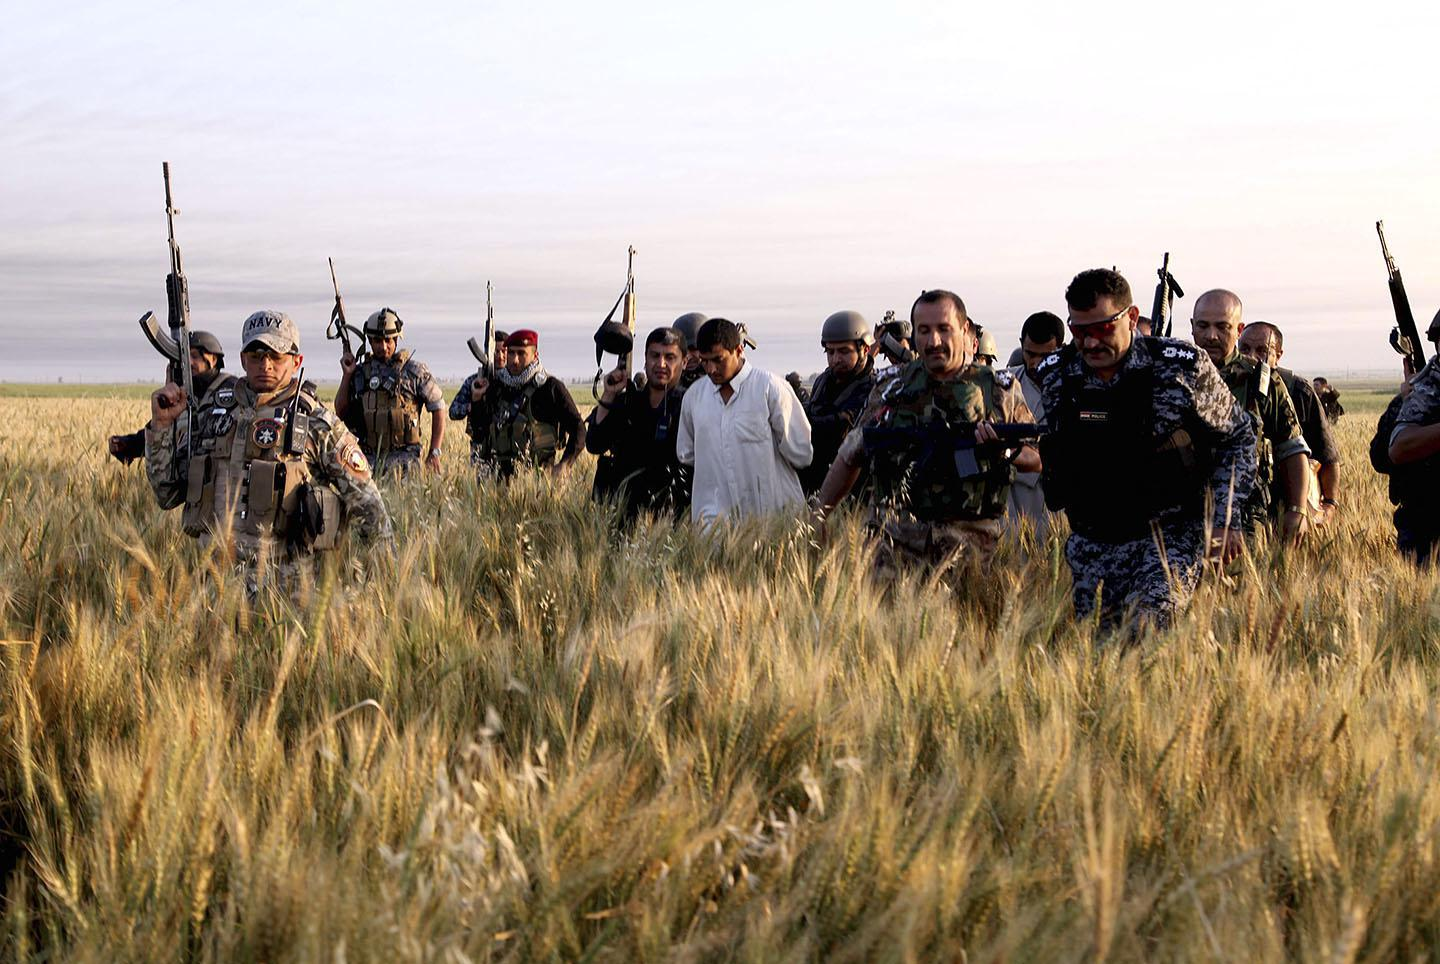 Iraqi security forces arrest suspected ISIS militants during a raid and weapons search operation in Hawija April 24, 2014.